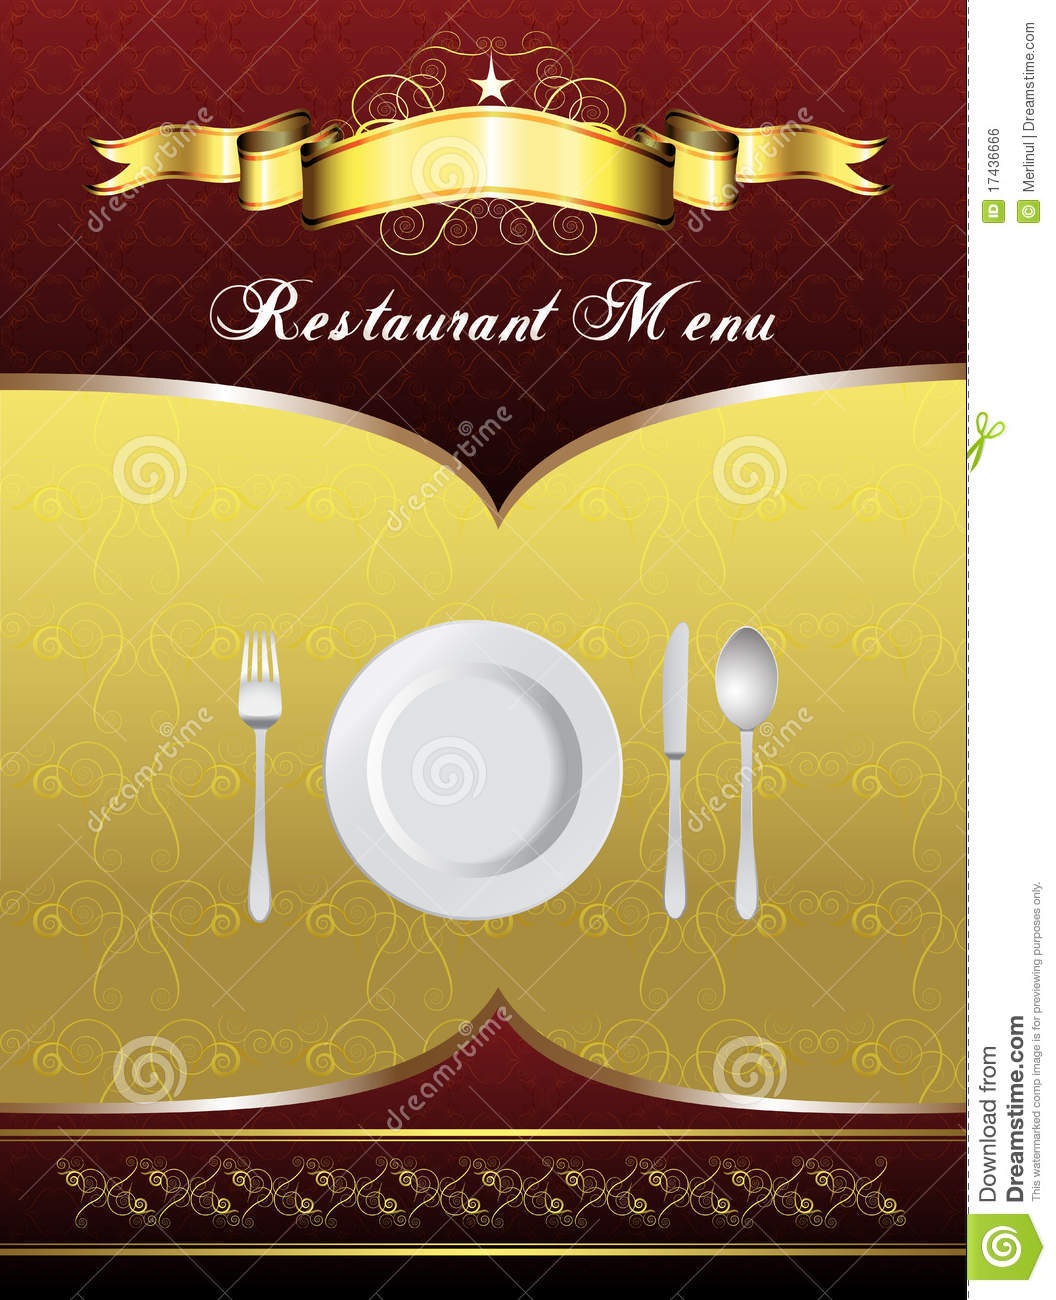 menu card design stock vector. illustration of party - 17436666